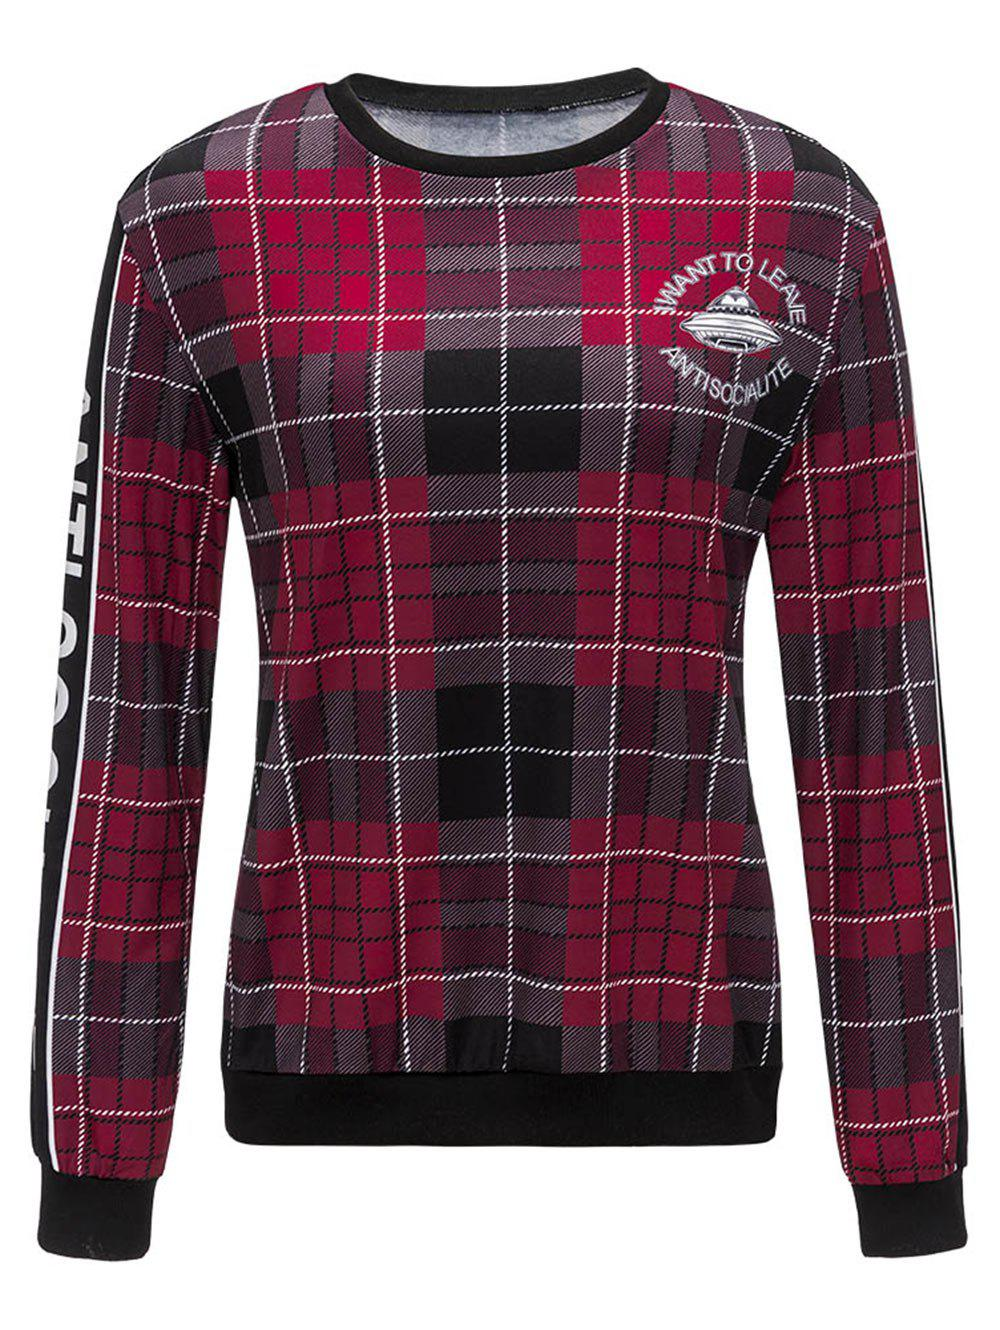 Graphic Print Crew Neck Plaid Sweatshirt printer head cap for stylus pro 4880 solvent printer